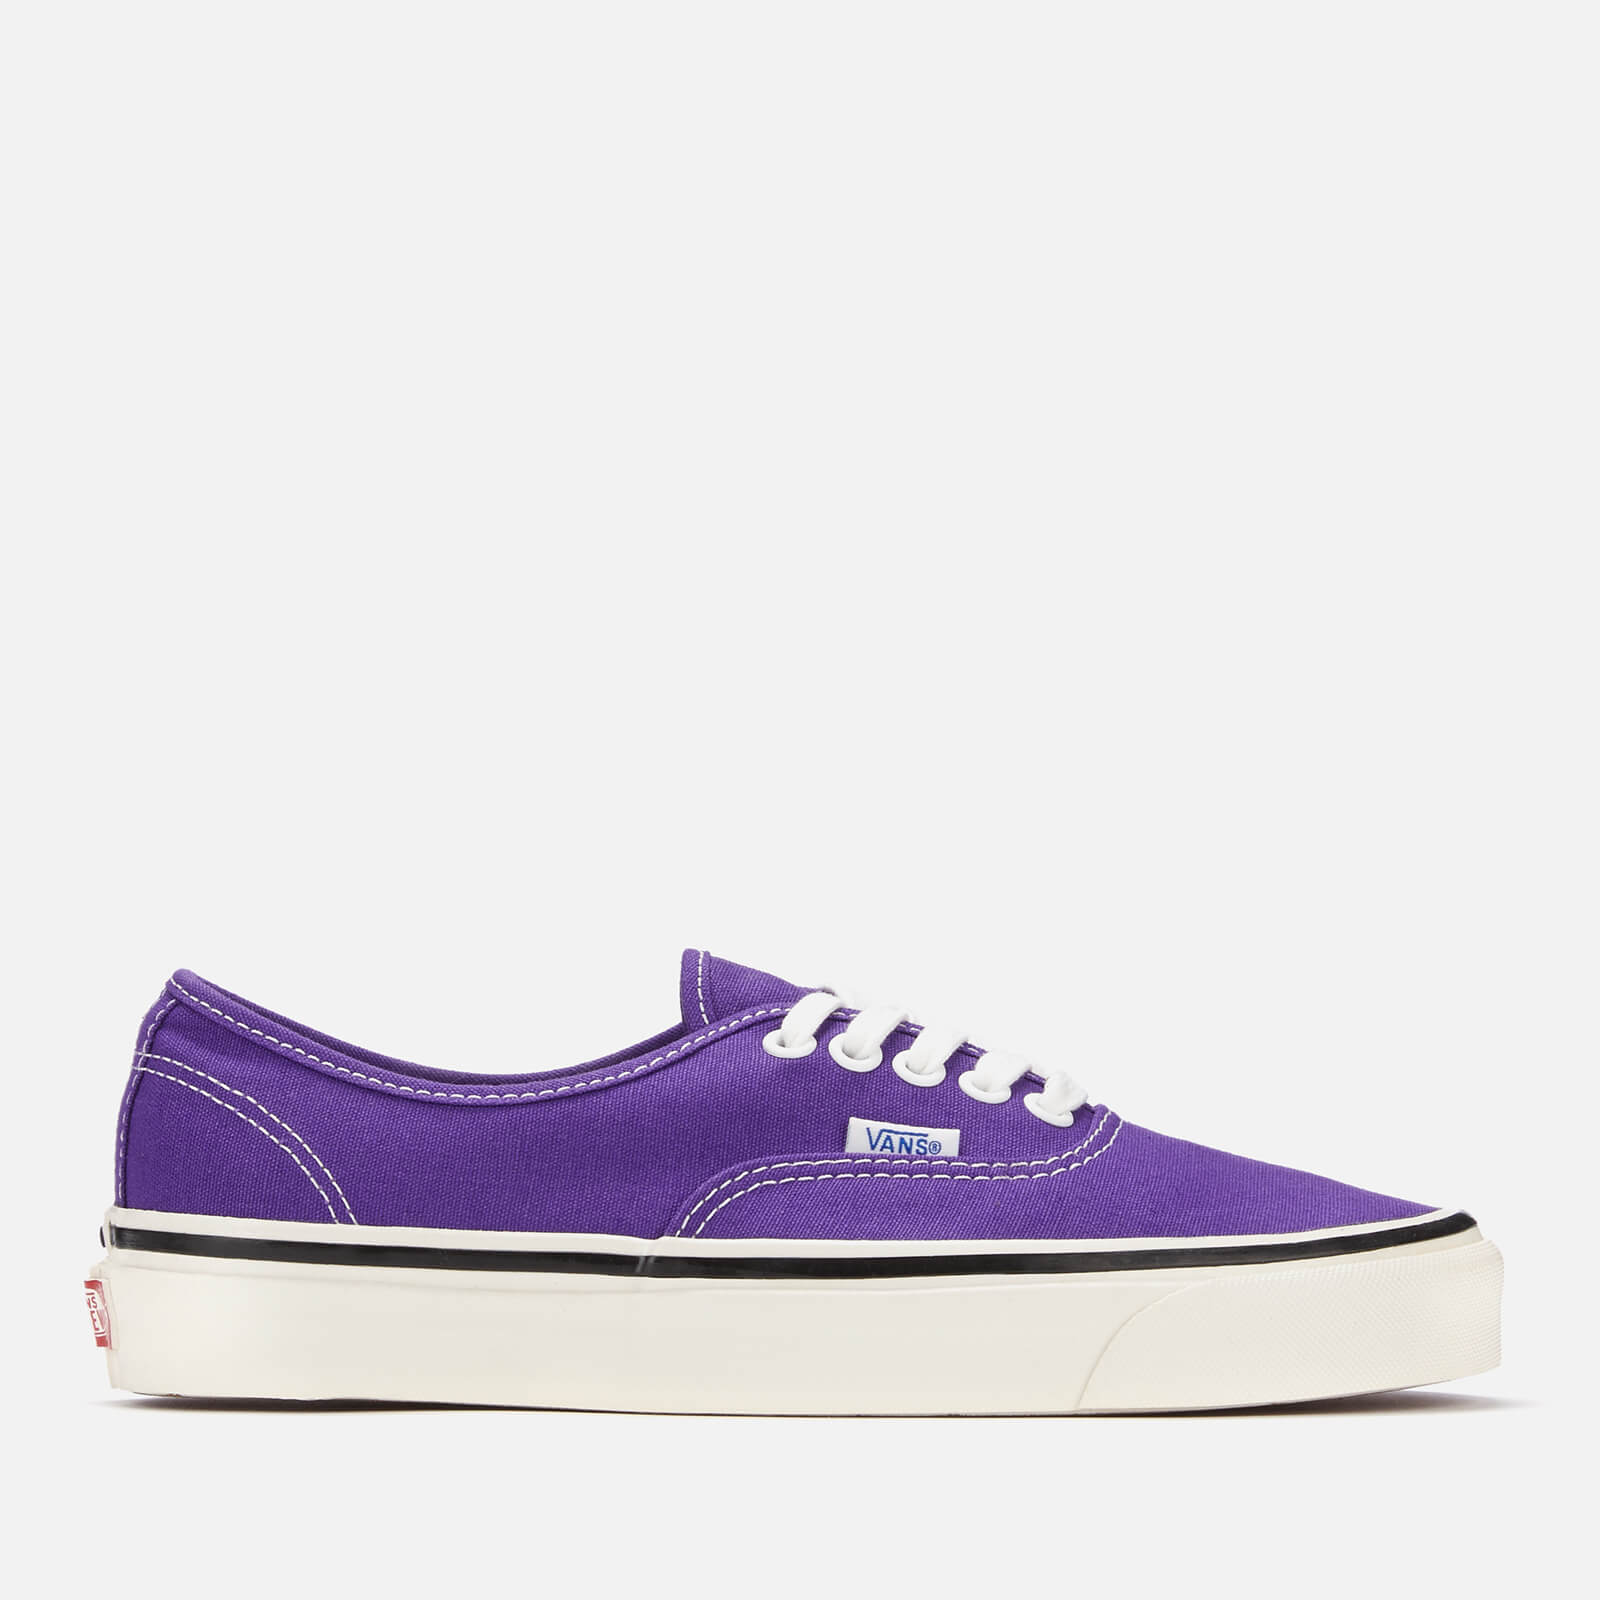 6298febfda Vans Anaheim Authentic 44 DX Trainers - Og Bright Purple - Free UK Delivery  over £50